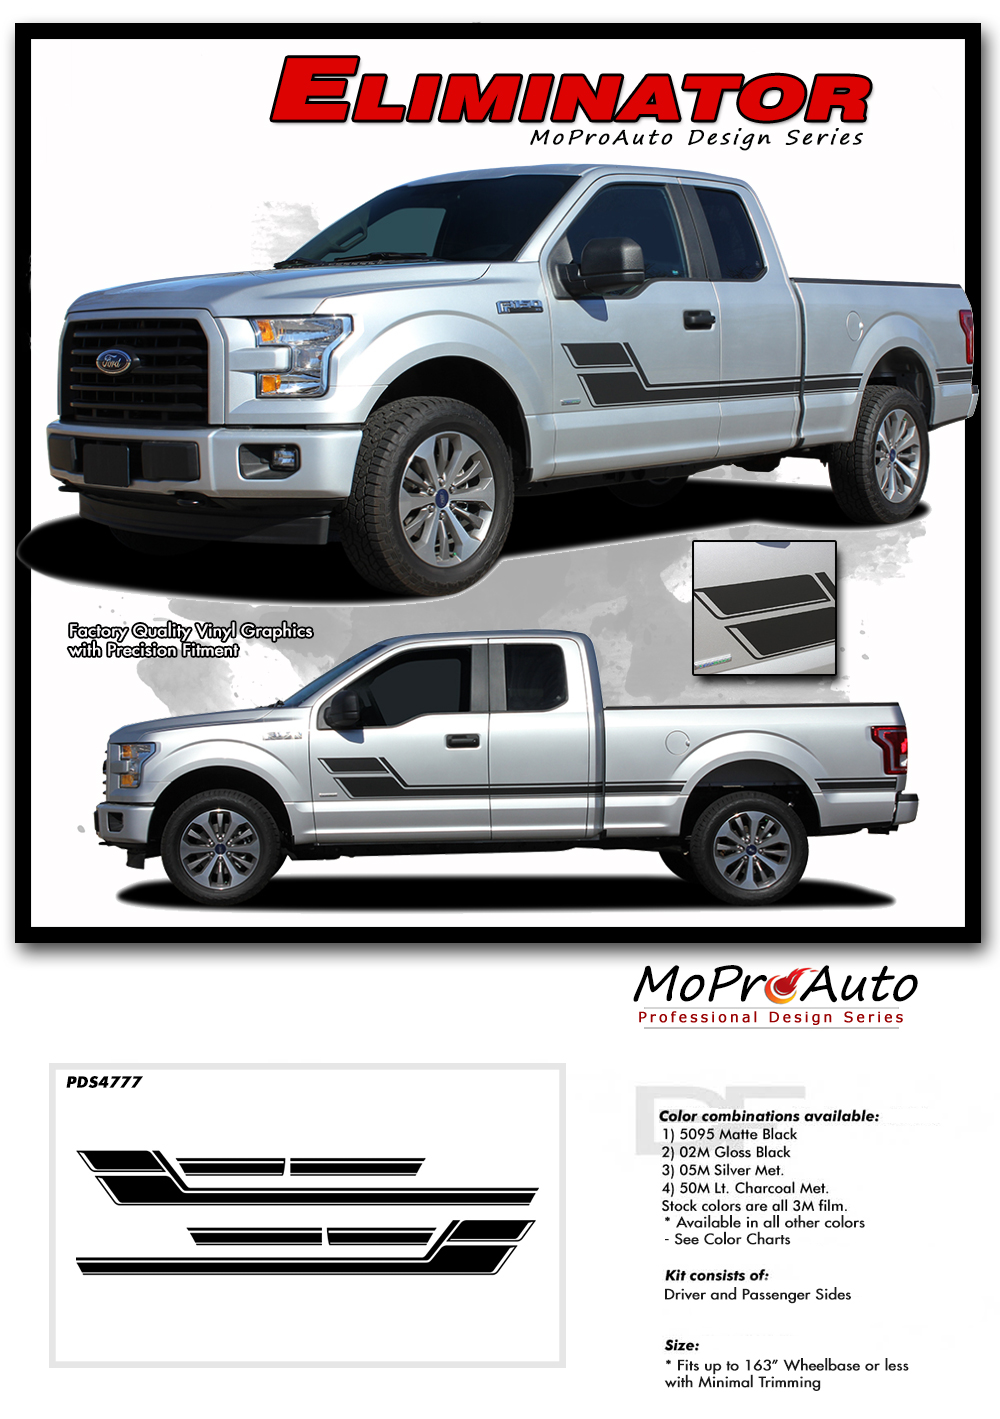 2015 2016 2017 2018 ELIMINATOR Door Stripes Ford F-Series F-150 Appearance Package Vinyl Graphics and Decals Kit by MoProAuto Pro Design Series